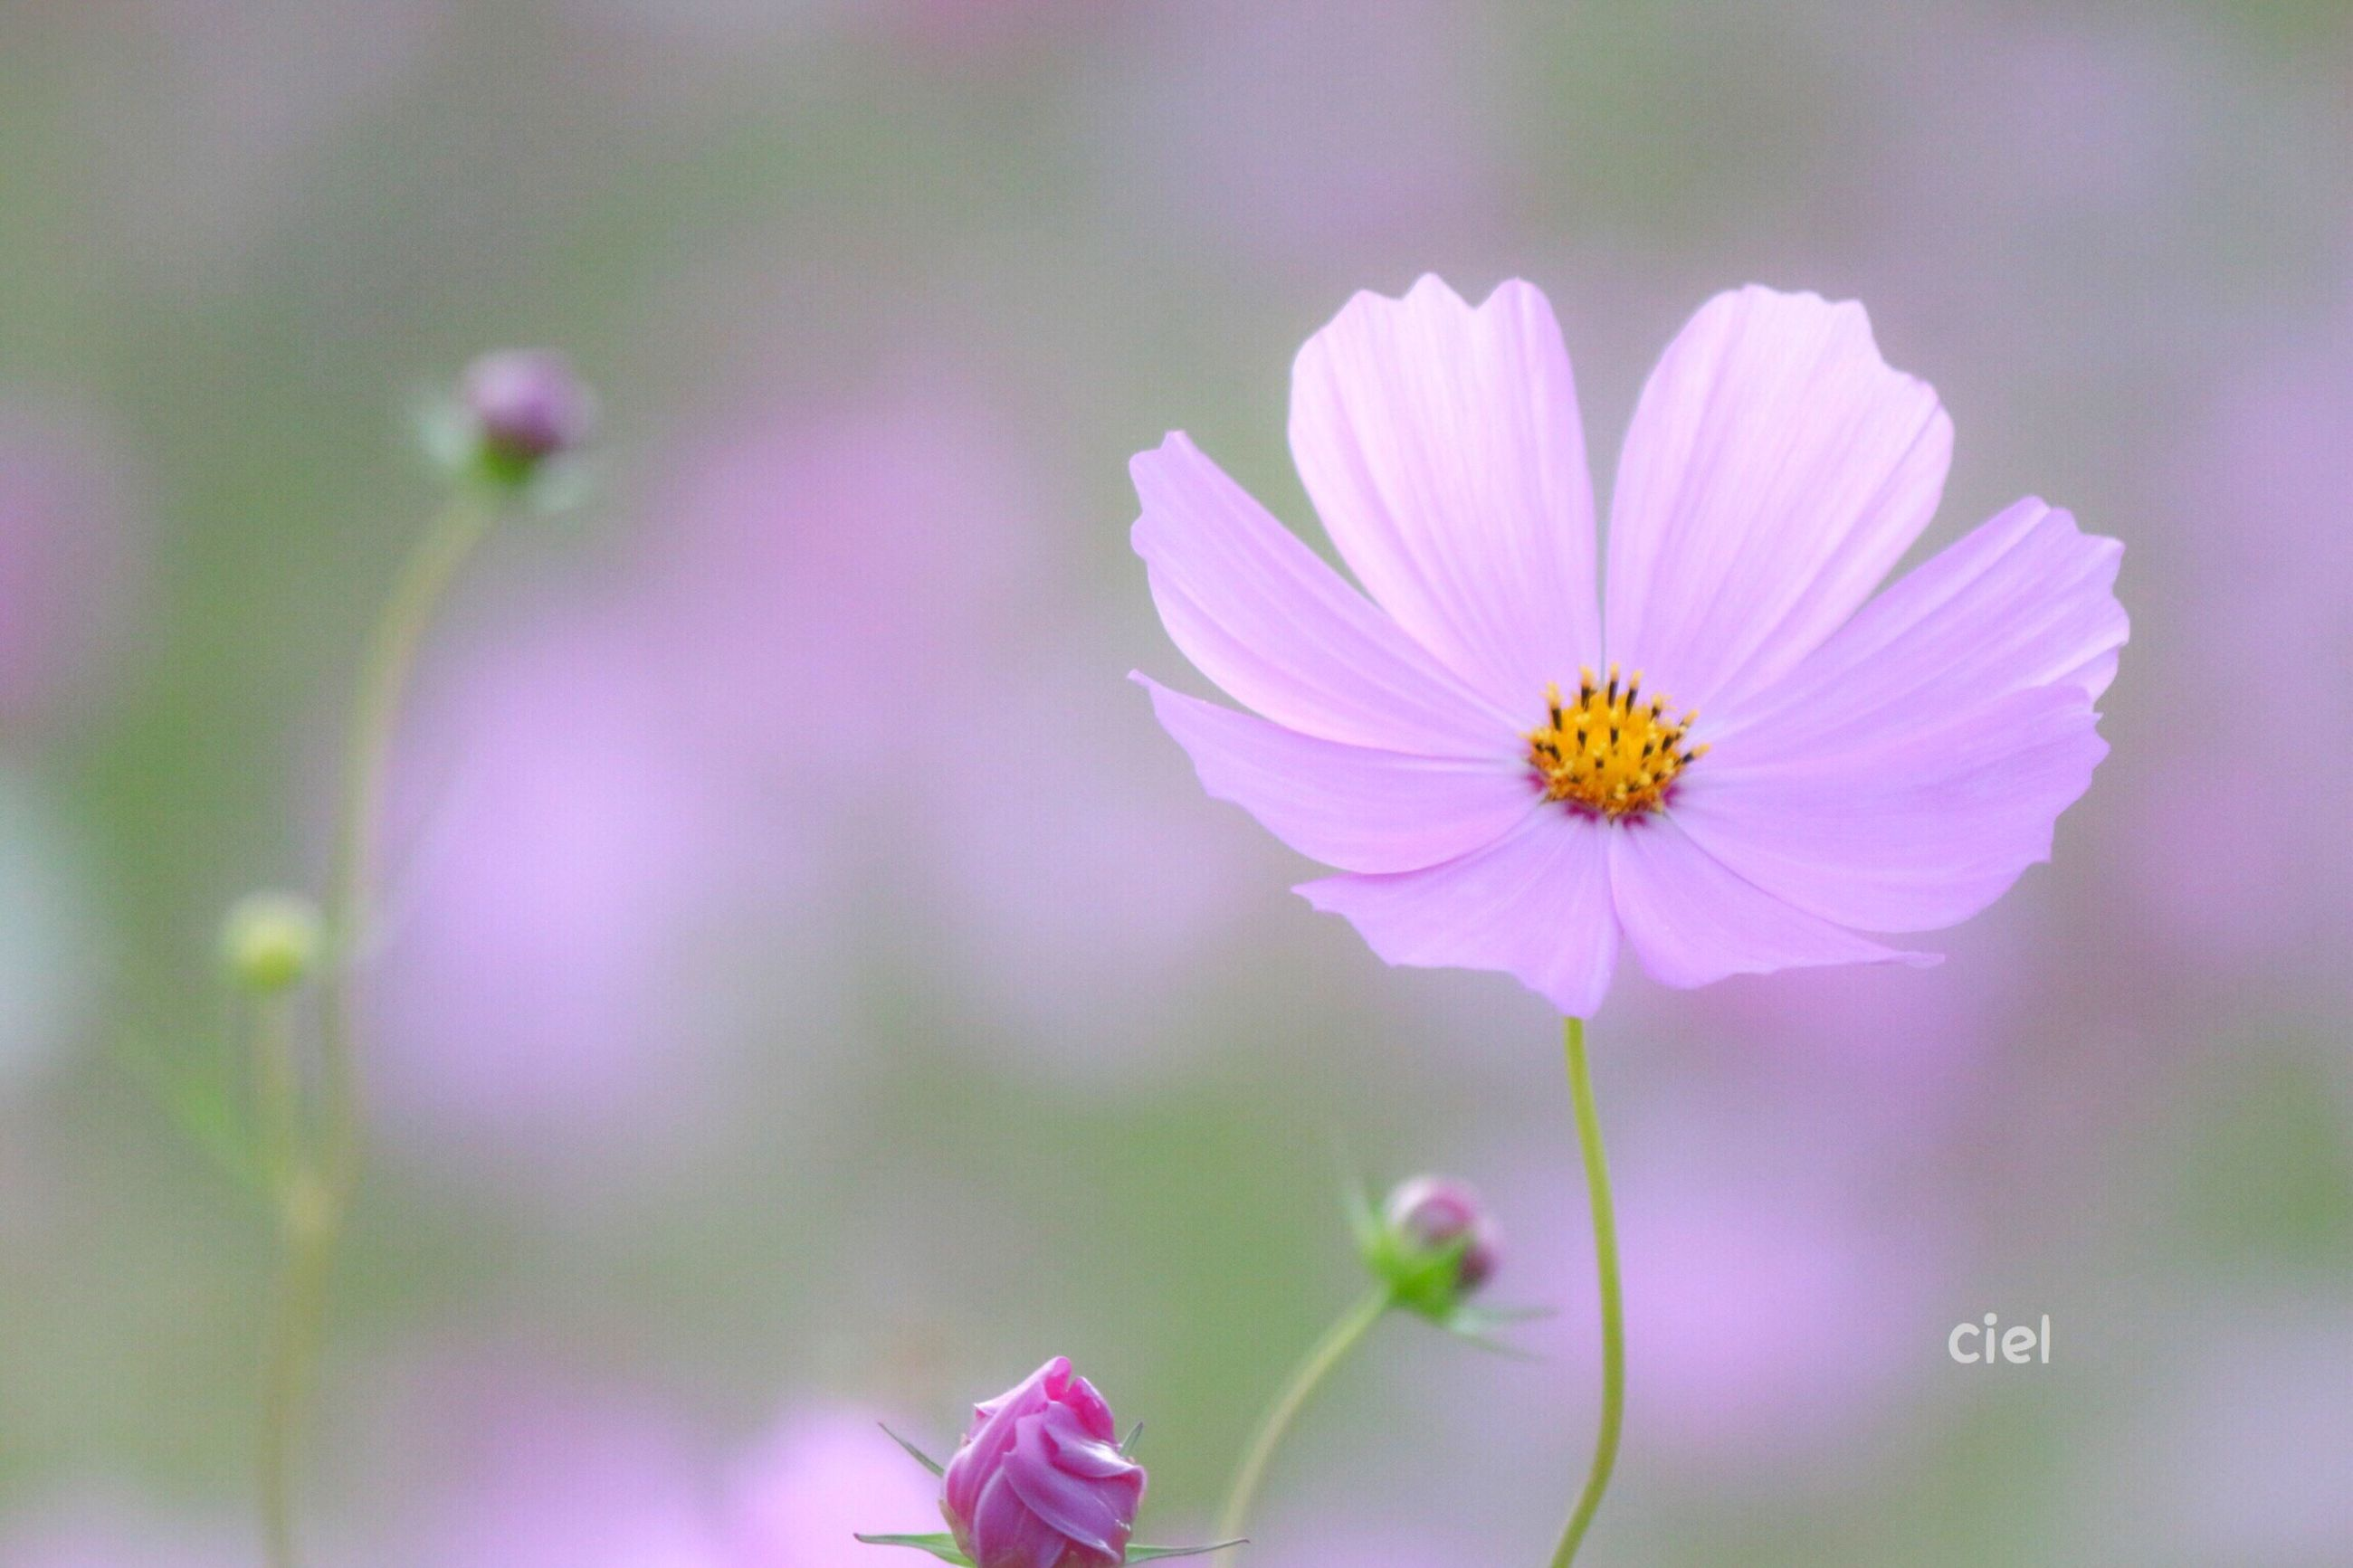 flower, freshness, petal, fragility, stem, flower head, close-up, in bloom, growth, beauty in nature, springtime, blossom, selective focus, focus on foreground, nature, daisy, cosmos flower, botany, pink color, single flower, plant, outdoors, day, cosmos, pollen, softness, no people, blooming, wildflower